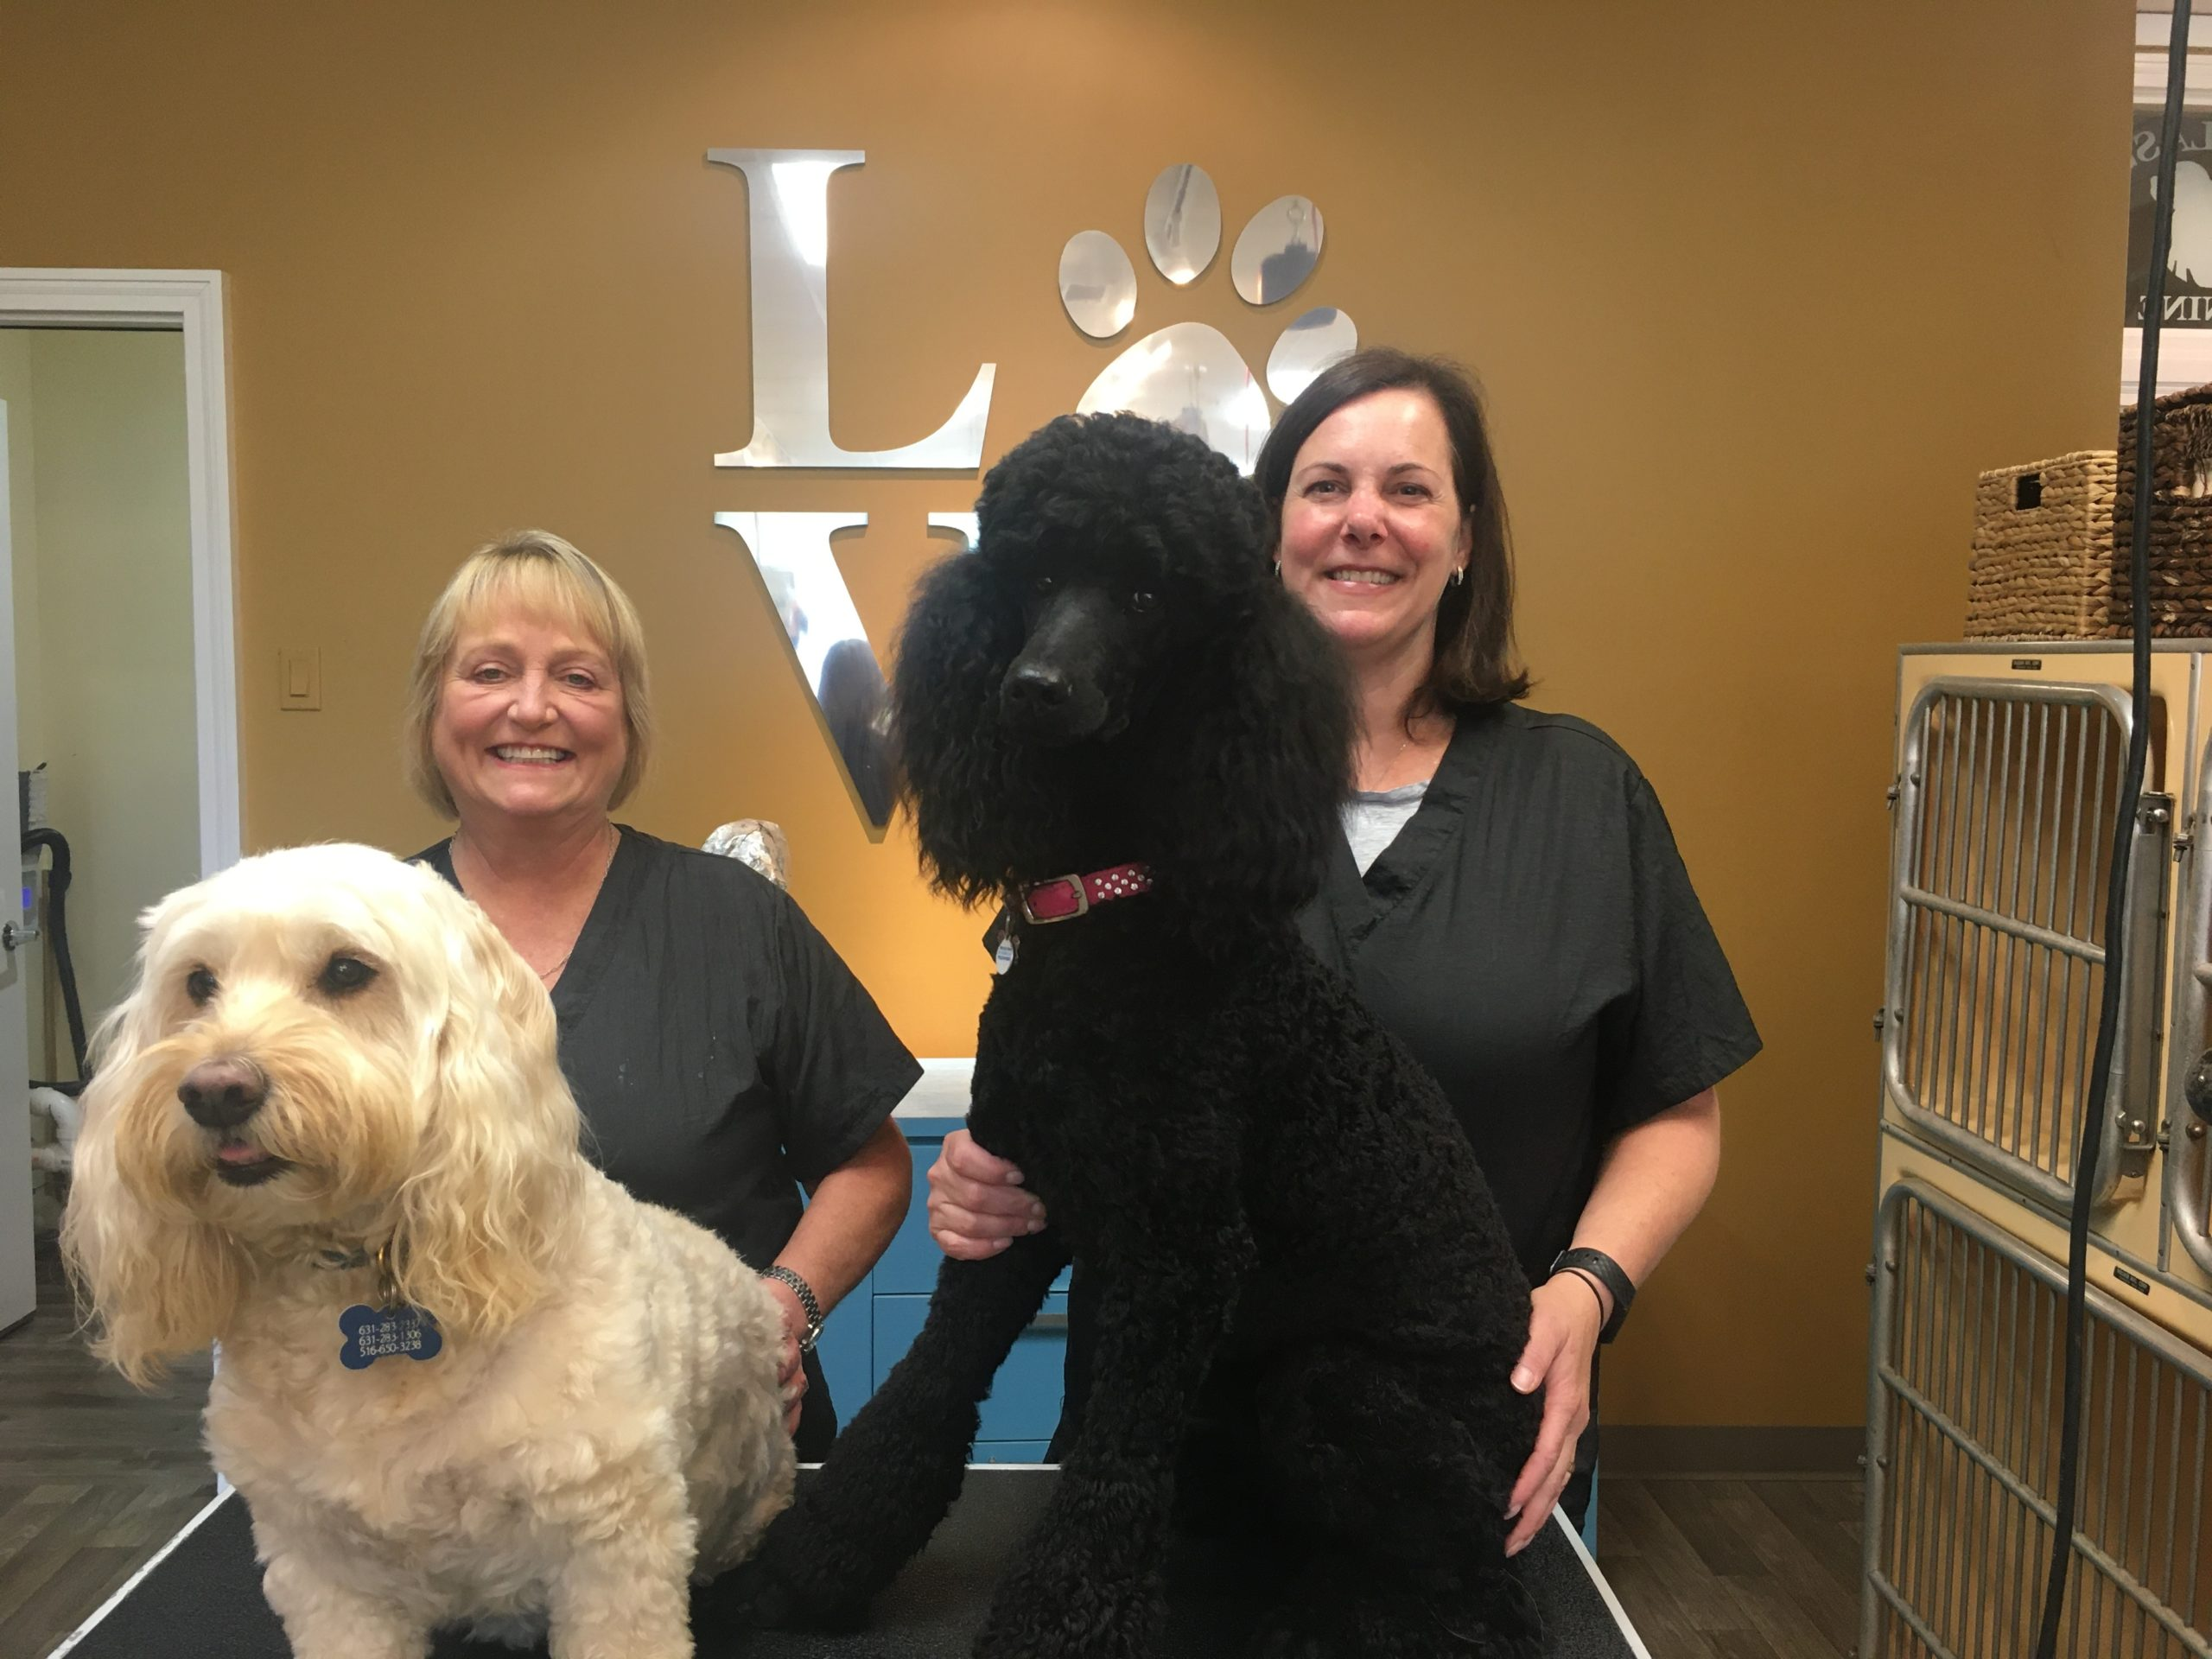 Kelly Scammell Humphreys (on the left), with her dog Mr. Parker, and new owner Jennifer Bockhaus (on the right), with her dog Beverly, at the Classy Canine in Southampton.